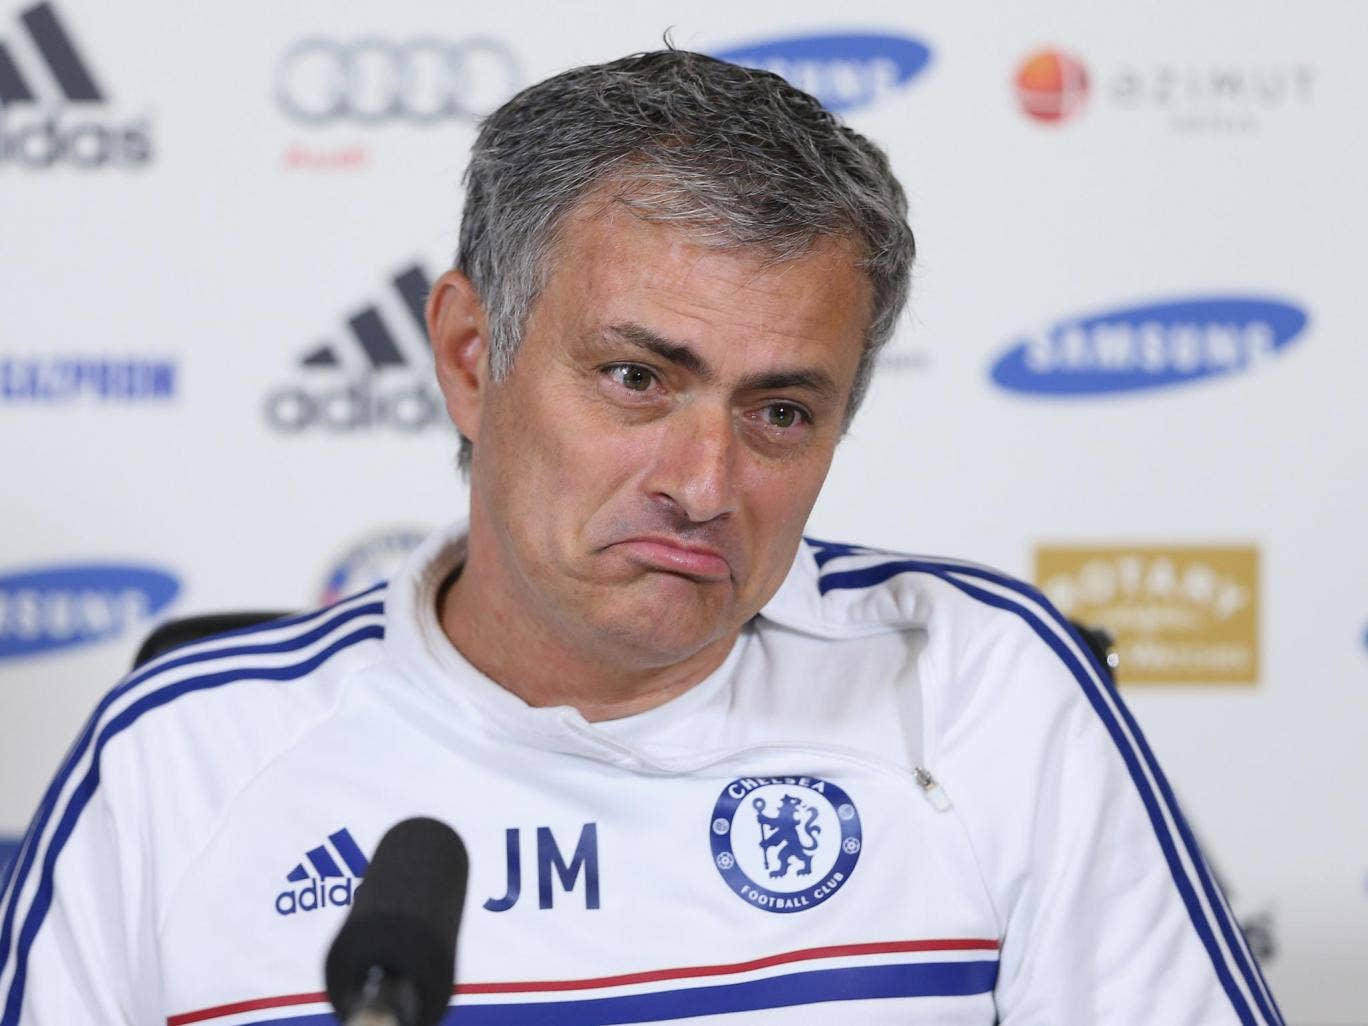 Jose Mourinho is maintaining a consistent line in limiting expectations